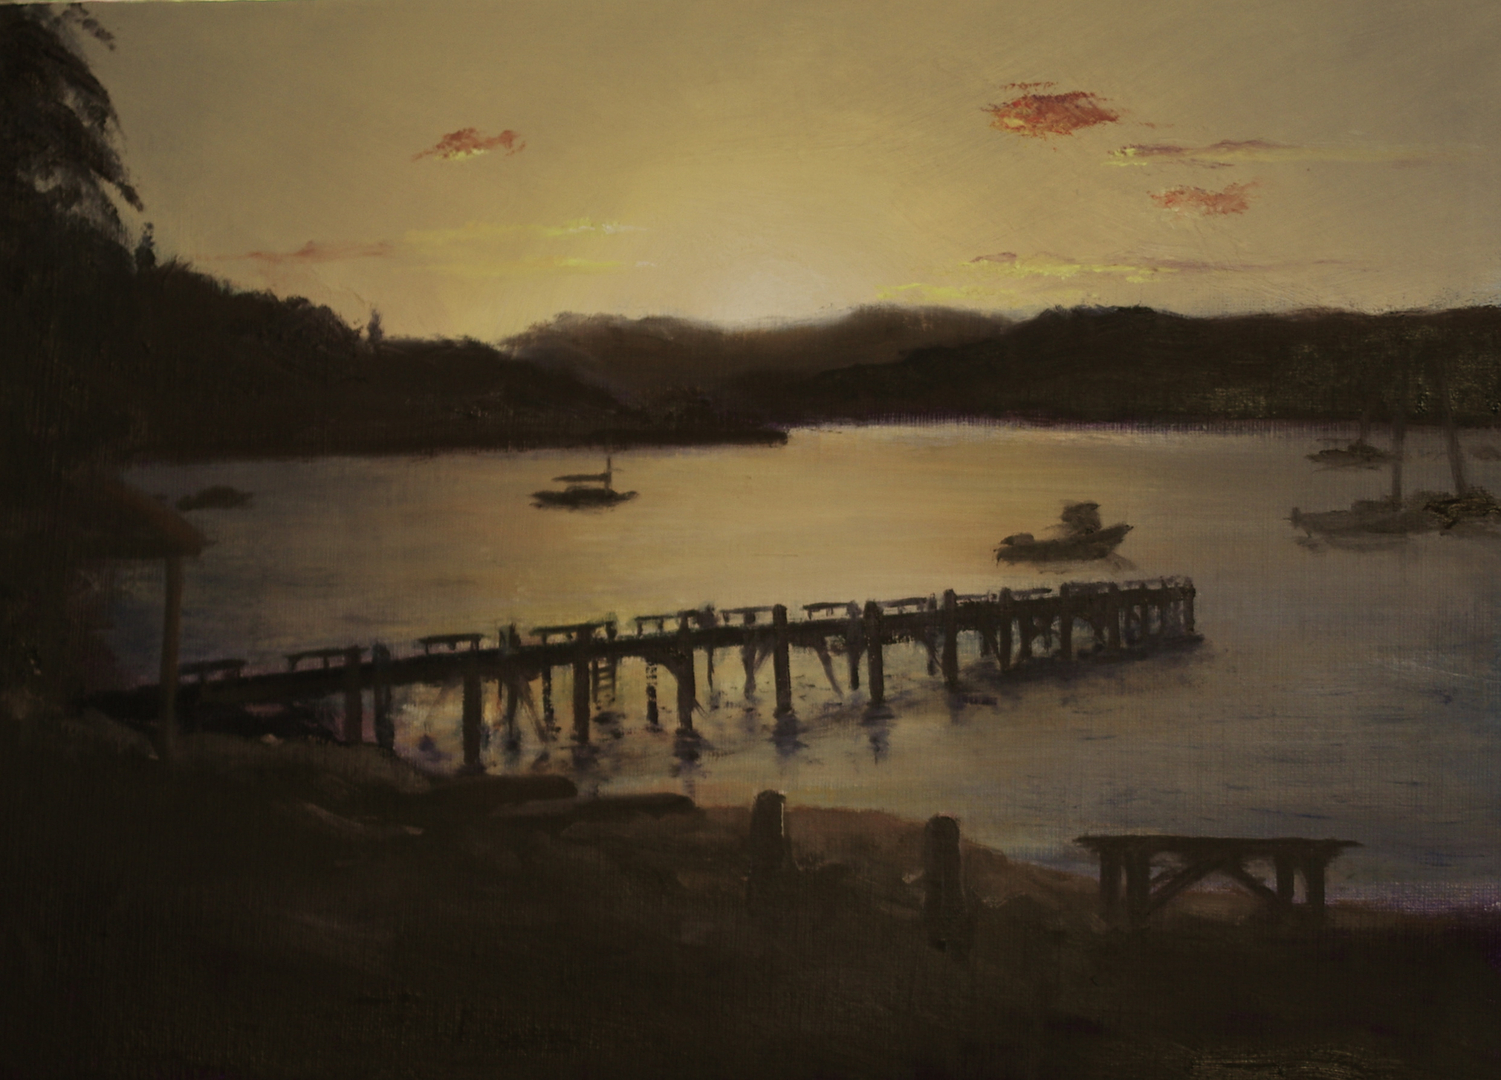 Sundown at Waikawa Bay, Picton, New Zealand